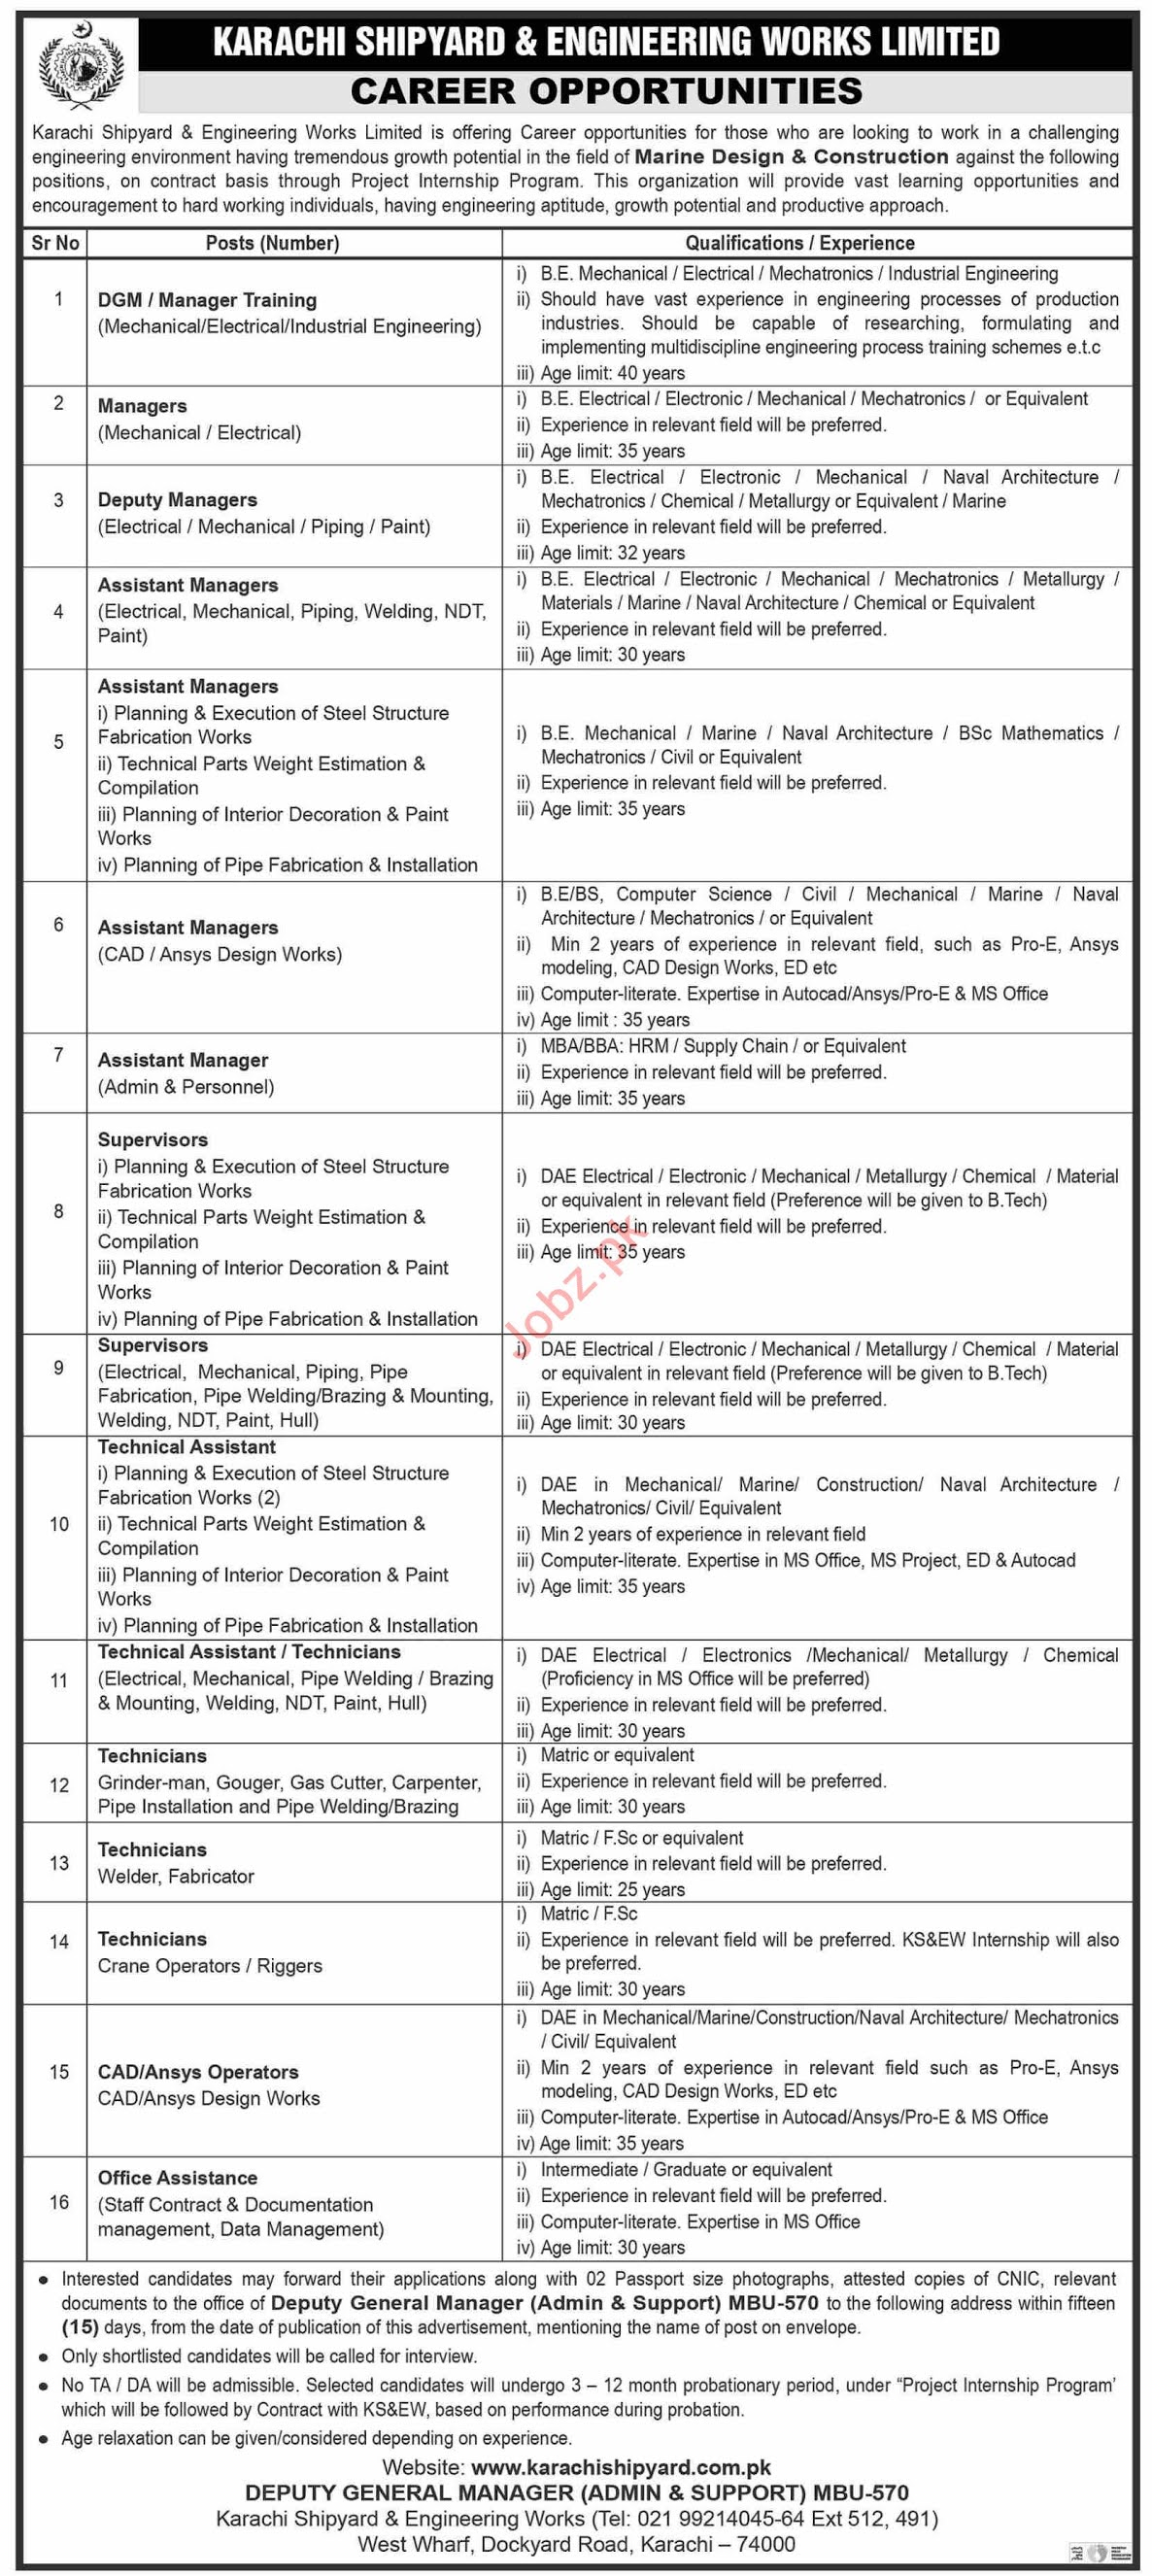 Jobs in Karachi Shipyard and Engineering Works Limited